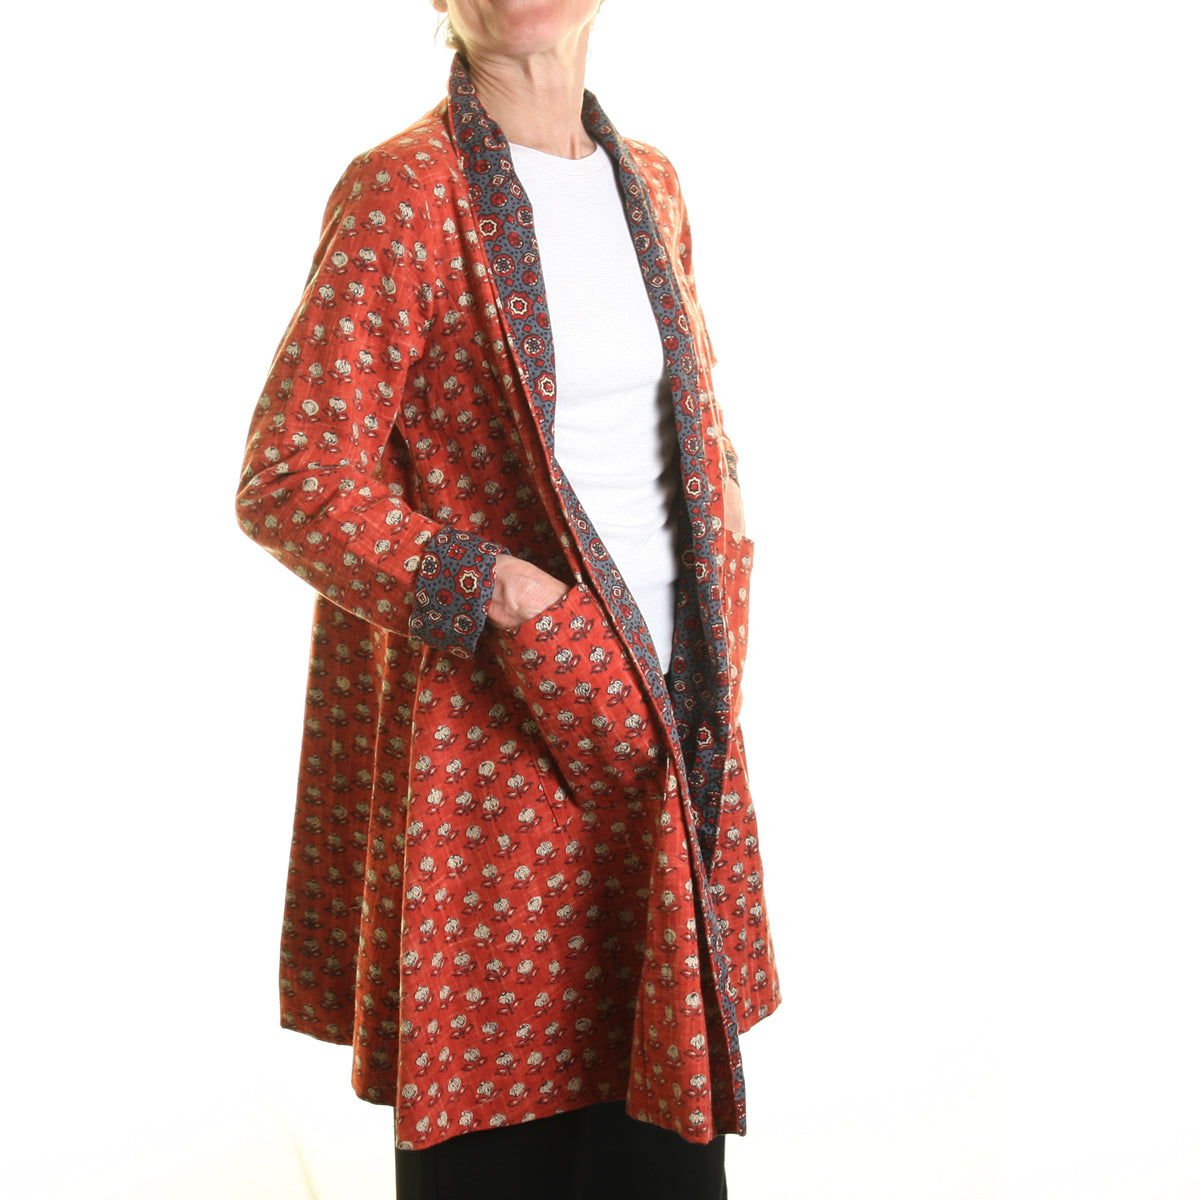 Nika Small Print Slub Jacket Burnt Orange with Paisley Lining